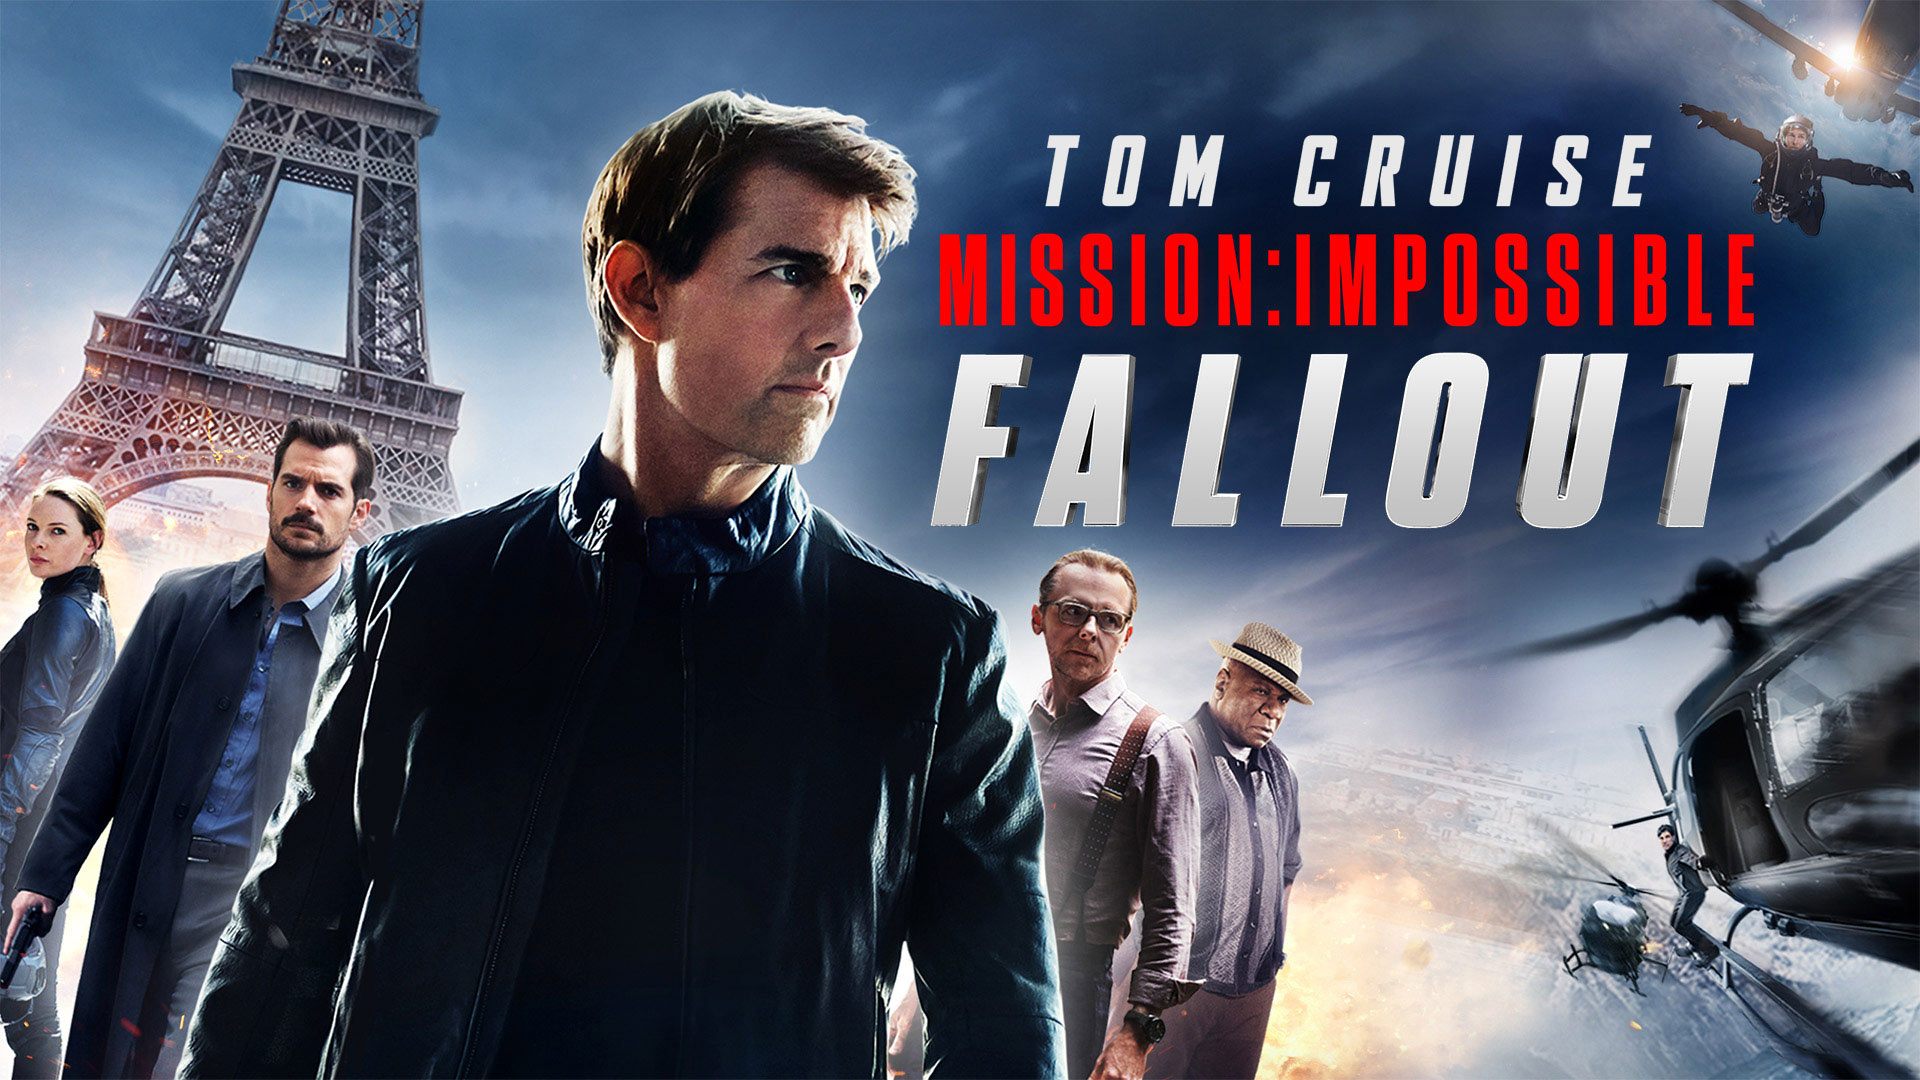 Mission: Impossible - Fallout (4K UHD)